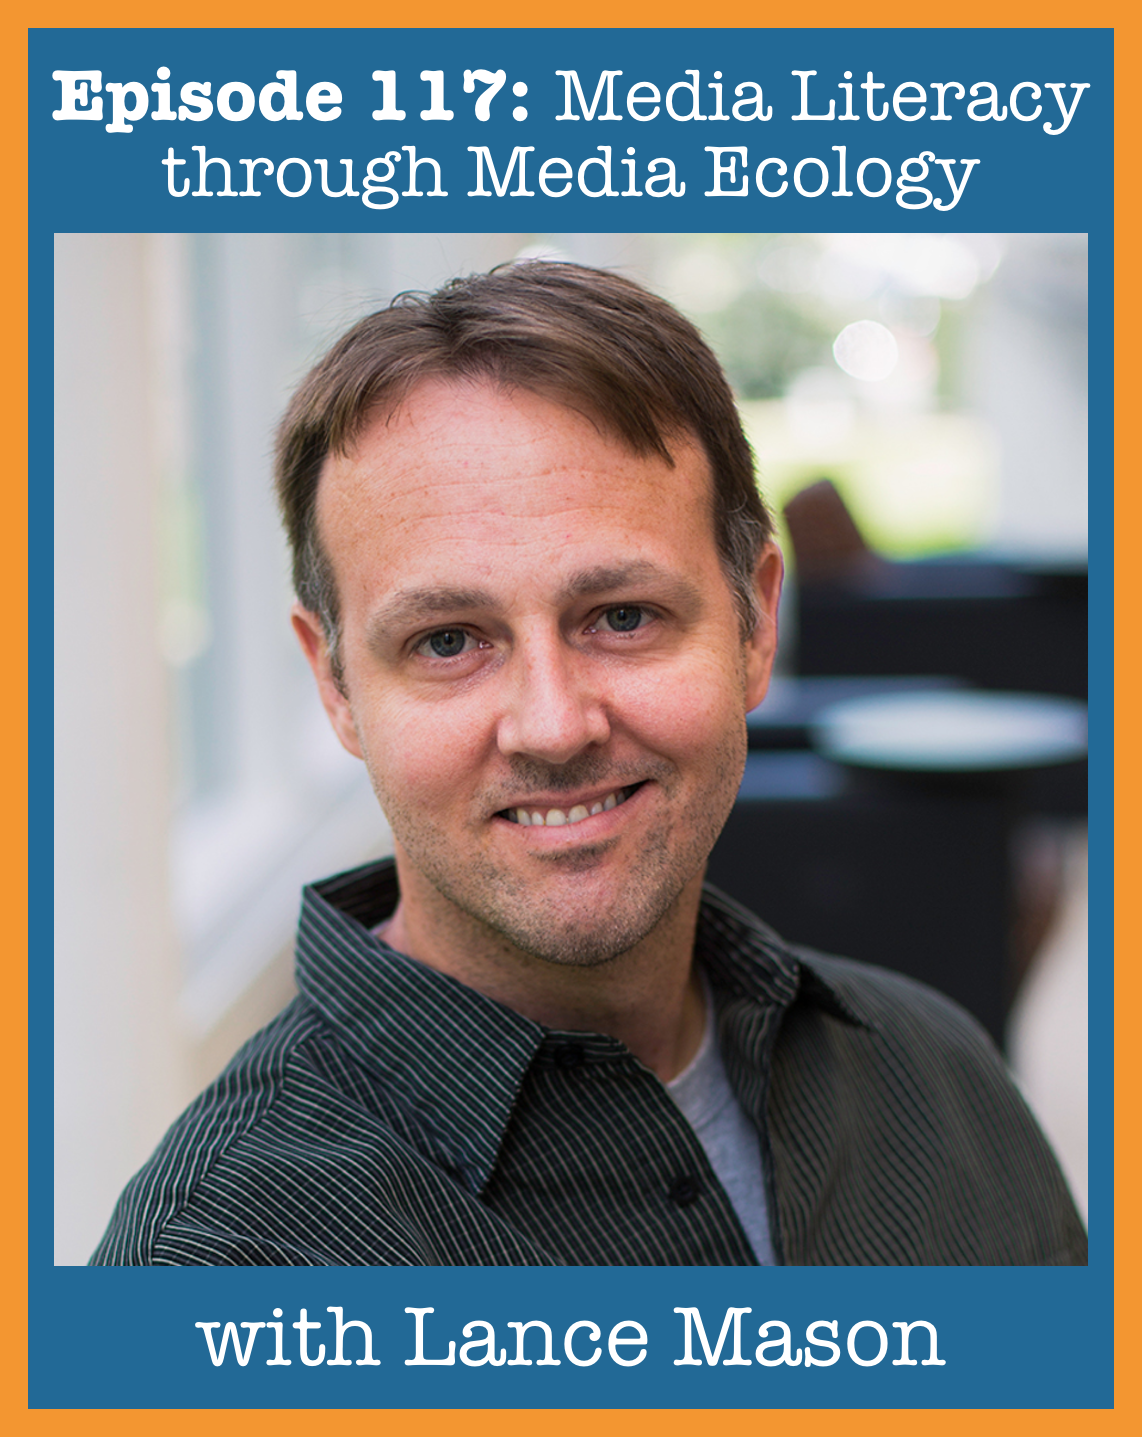 Episode 117: Media Literacy through Media Ecology with Lance Mason – Visions of Education